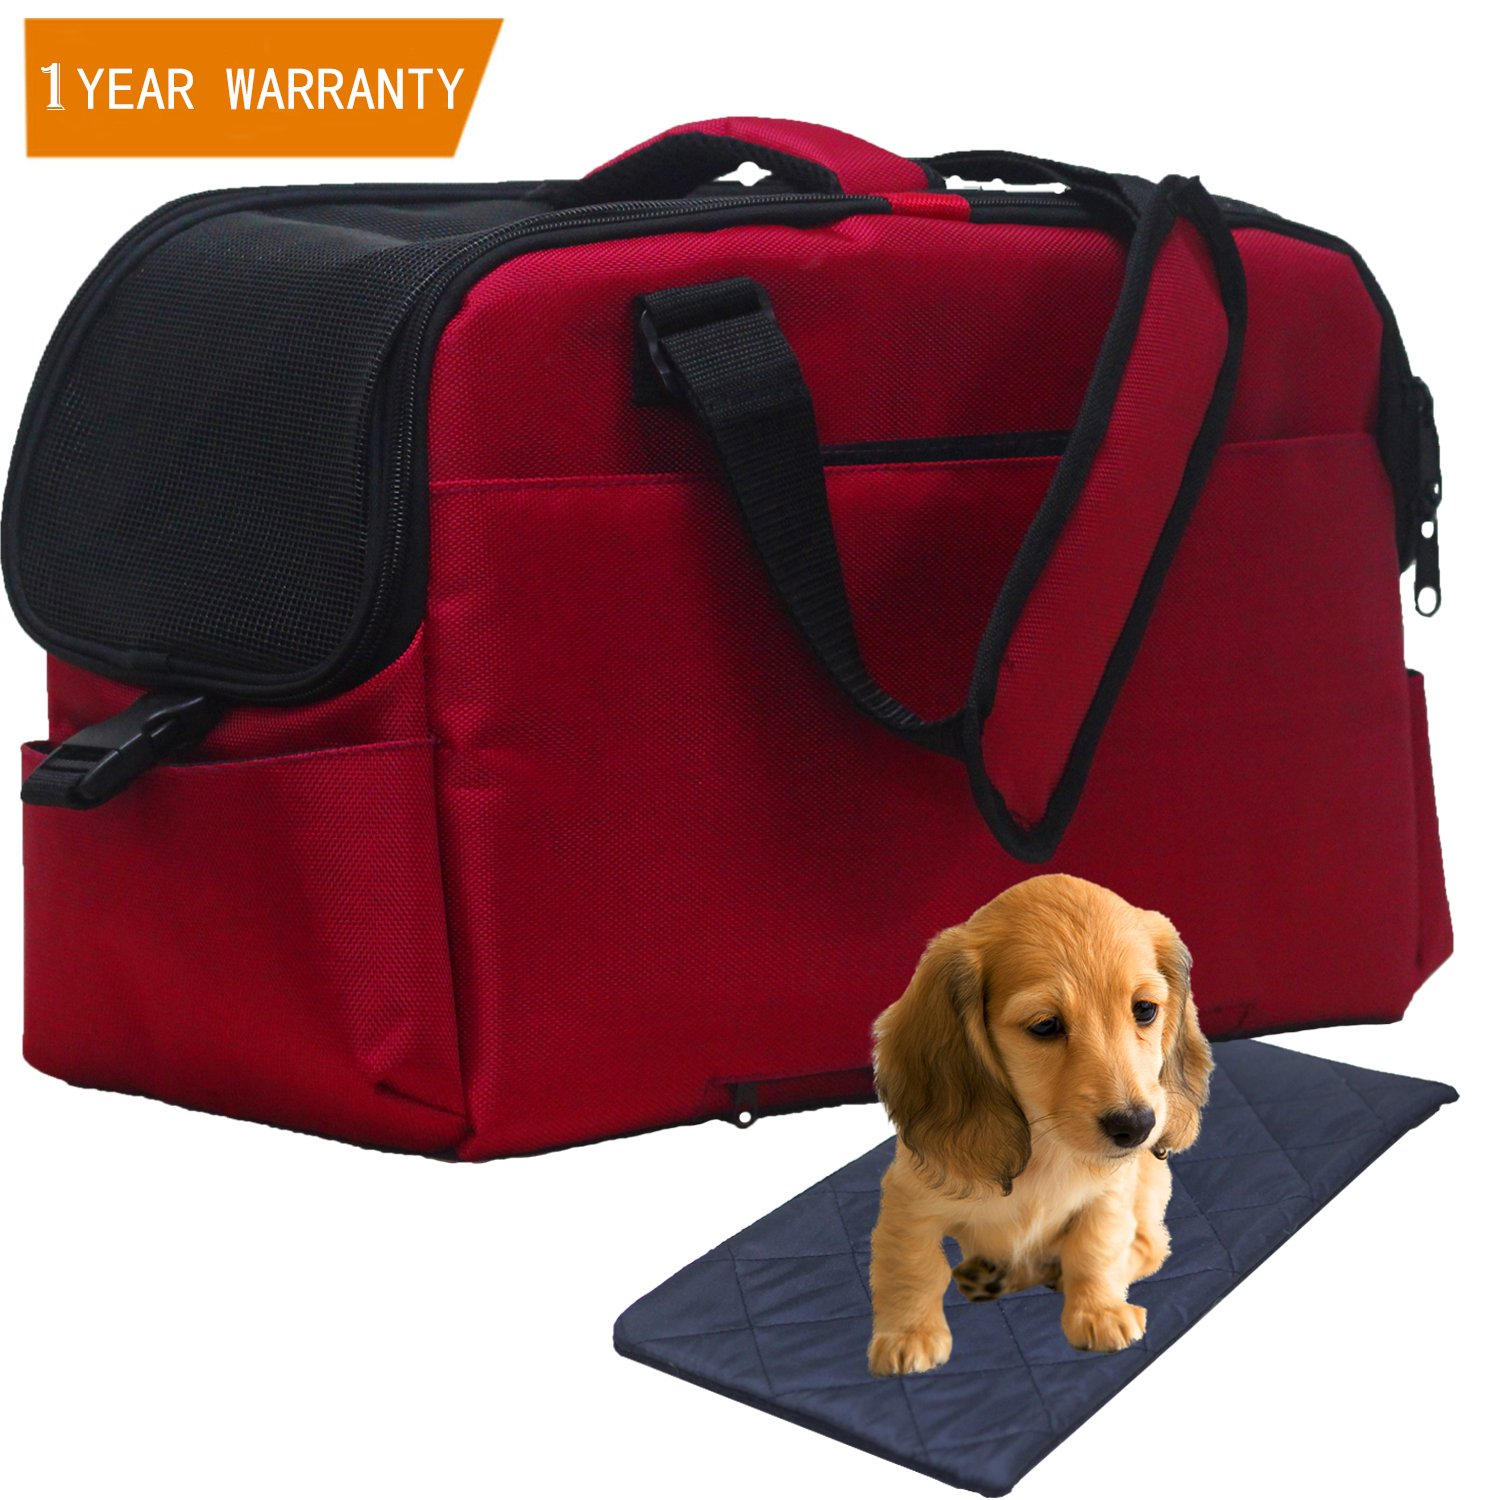 Pet Carrier, Airline Approved Soft Sided Travel Bag for Small Dogs and Cat Under Seat Portable & Foldable Animal Tote With Airy Windows Locking Zippersand Spacious Soft Pad for Puppies, Kitten Red